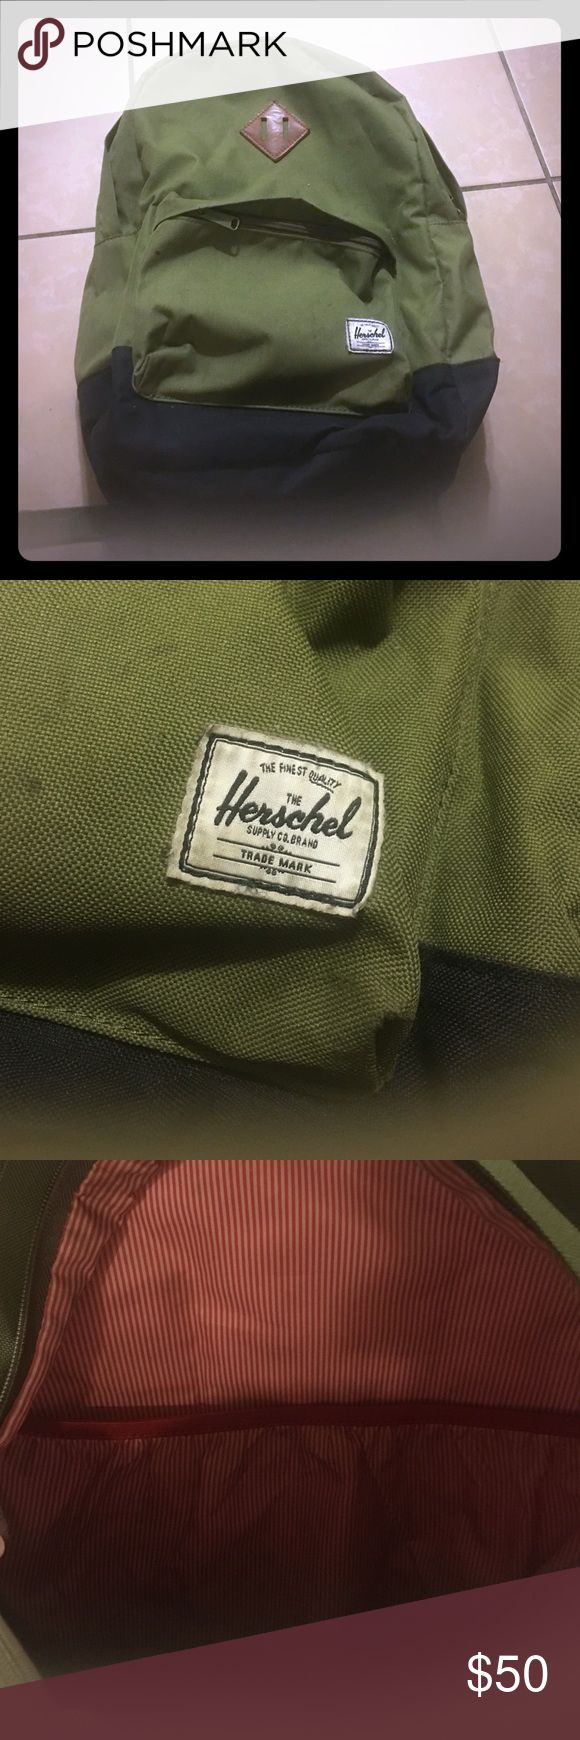 Herschel olive green backpack Stripe red lining. One size. Herschel Supply Company Bags Backpacks